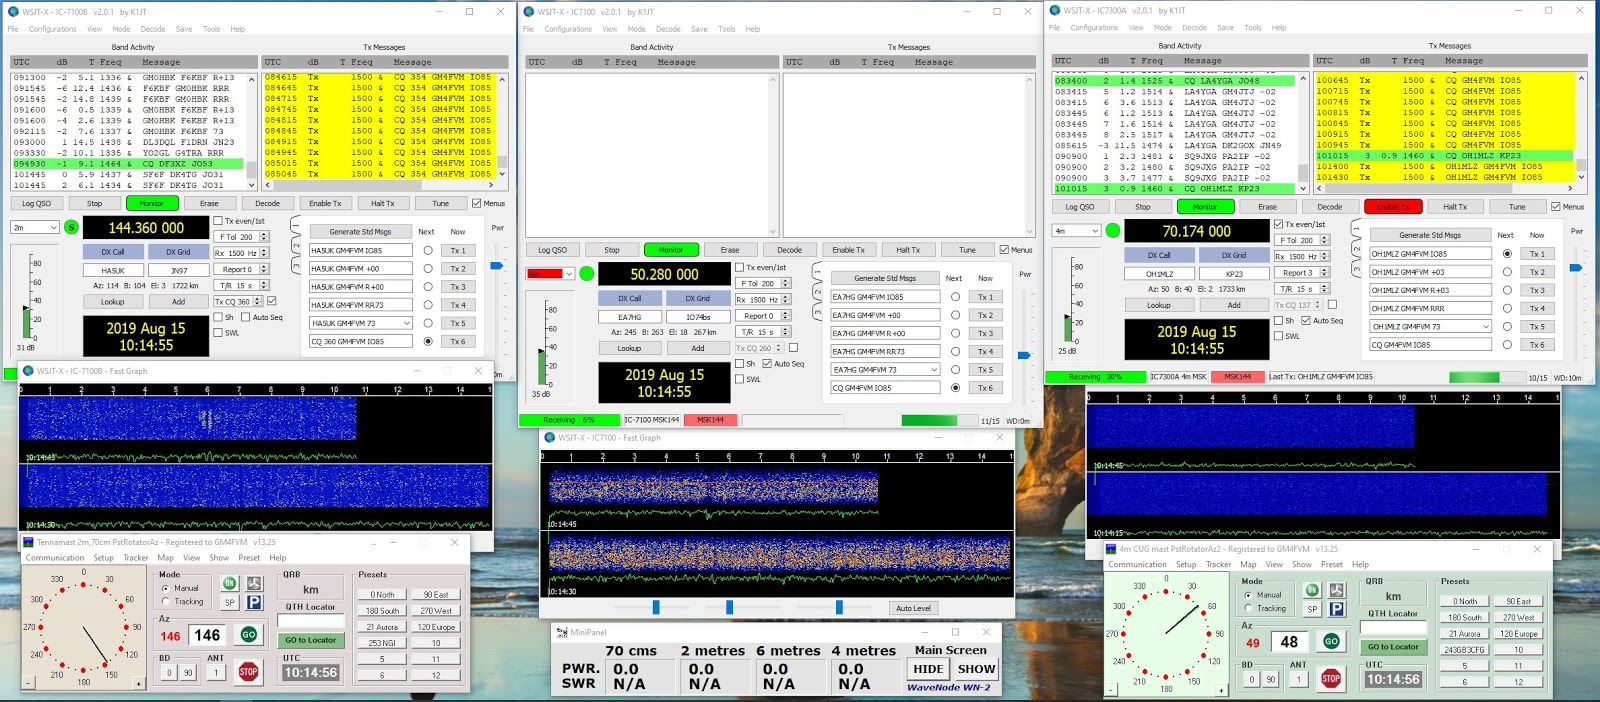 GM4FVM's radio world: Perseids and FT8, plus MSK144 T/R 15